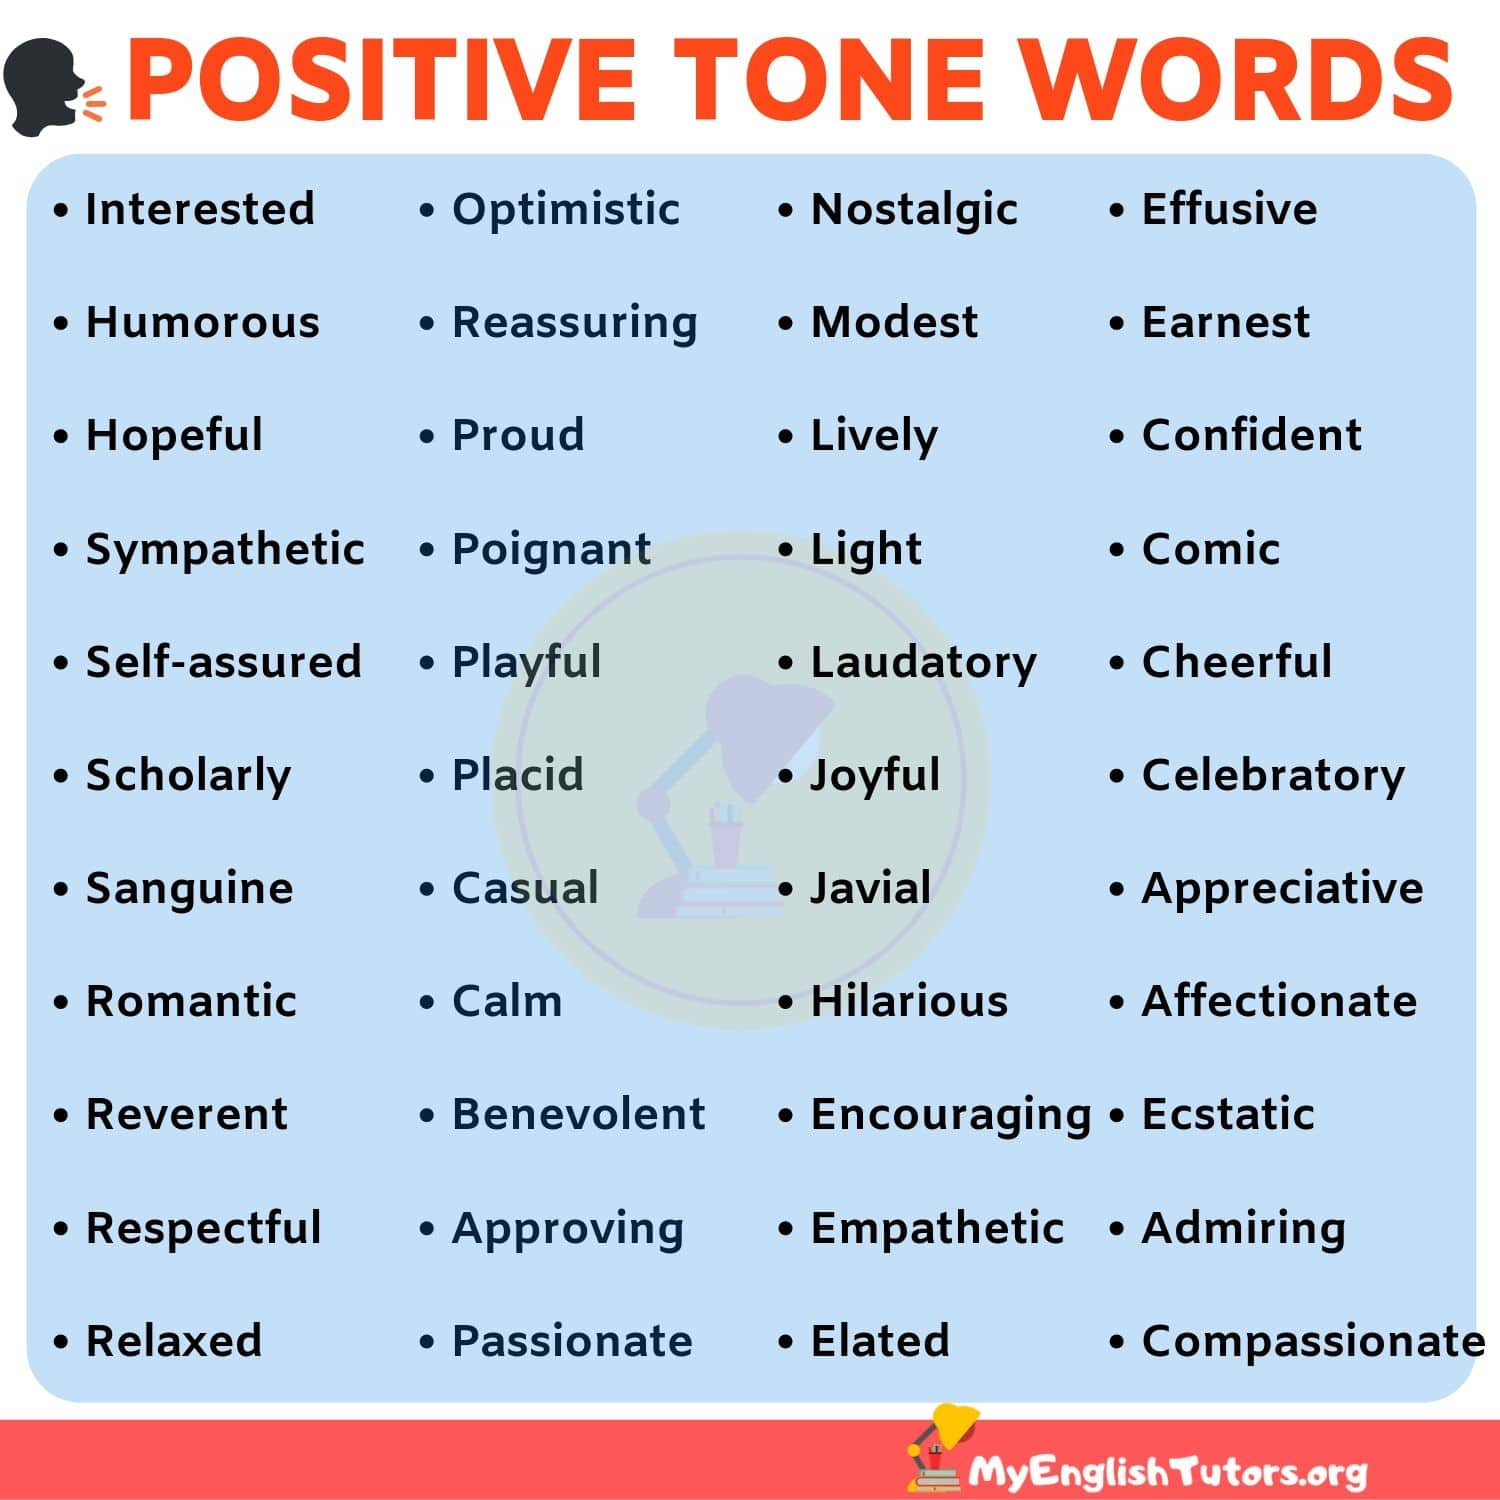 List Of TONE Words: 40+ Positive Tone Words To Describe